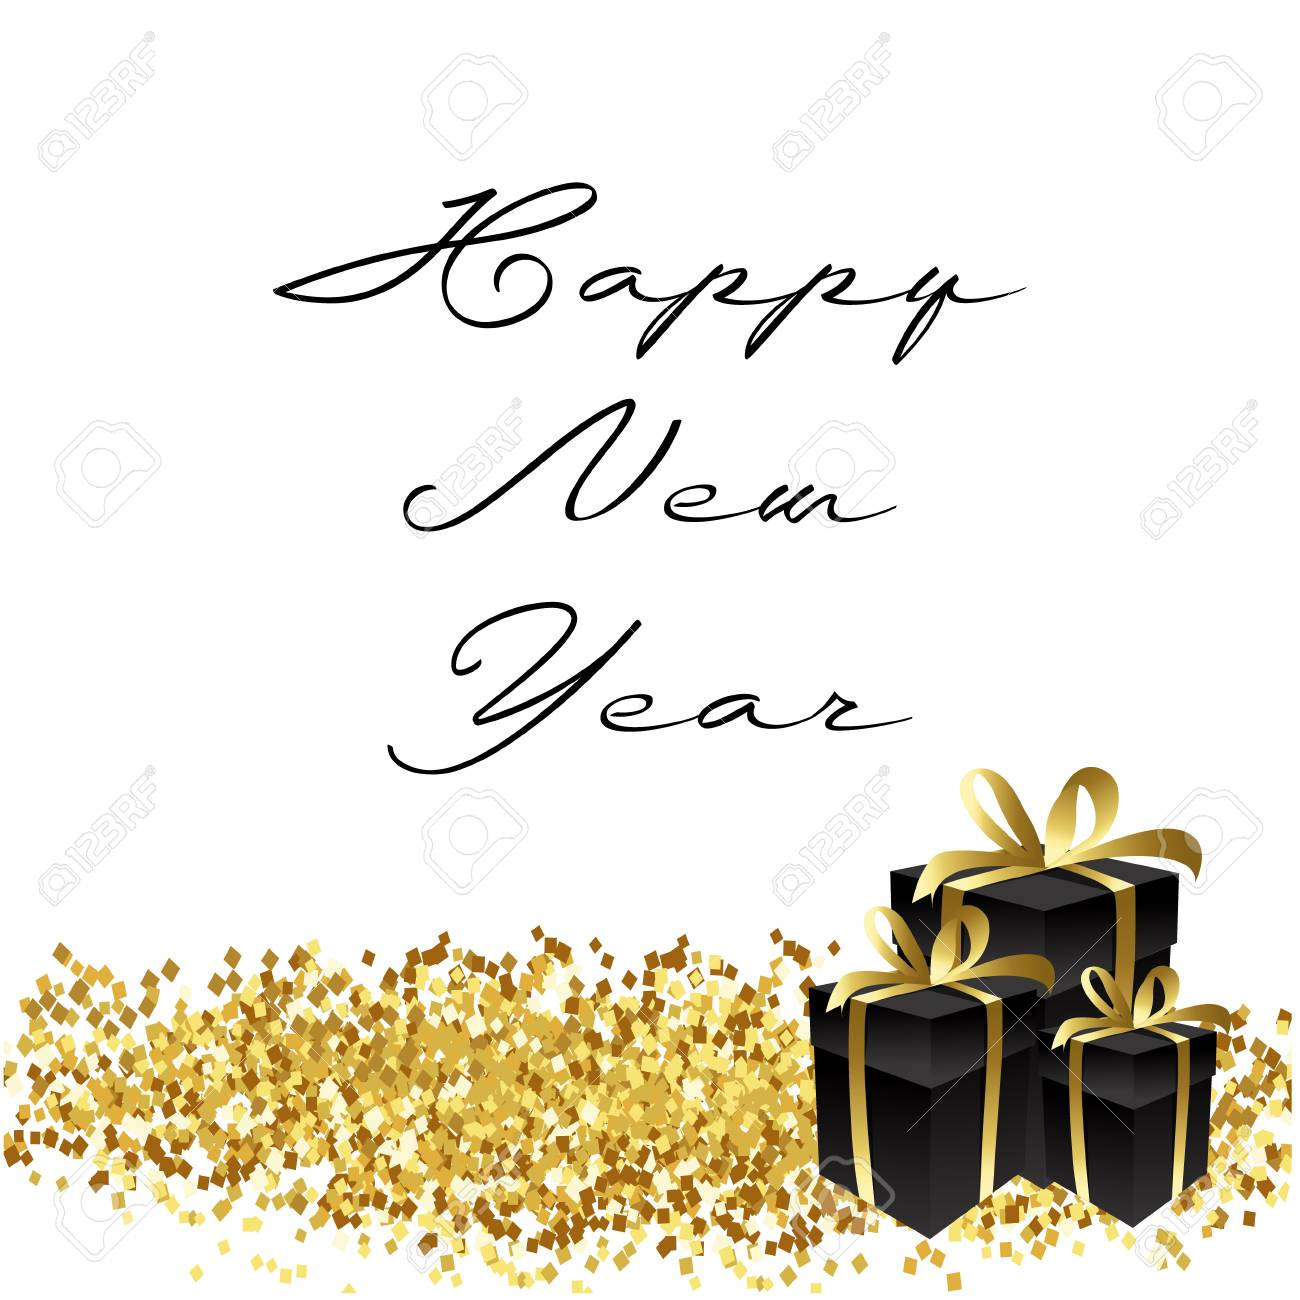 happy new year gold glitter 2018 golden background for flyer poster sign